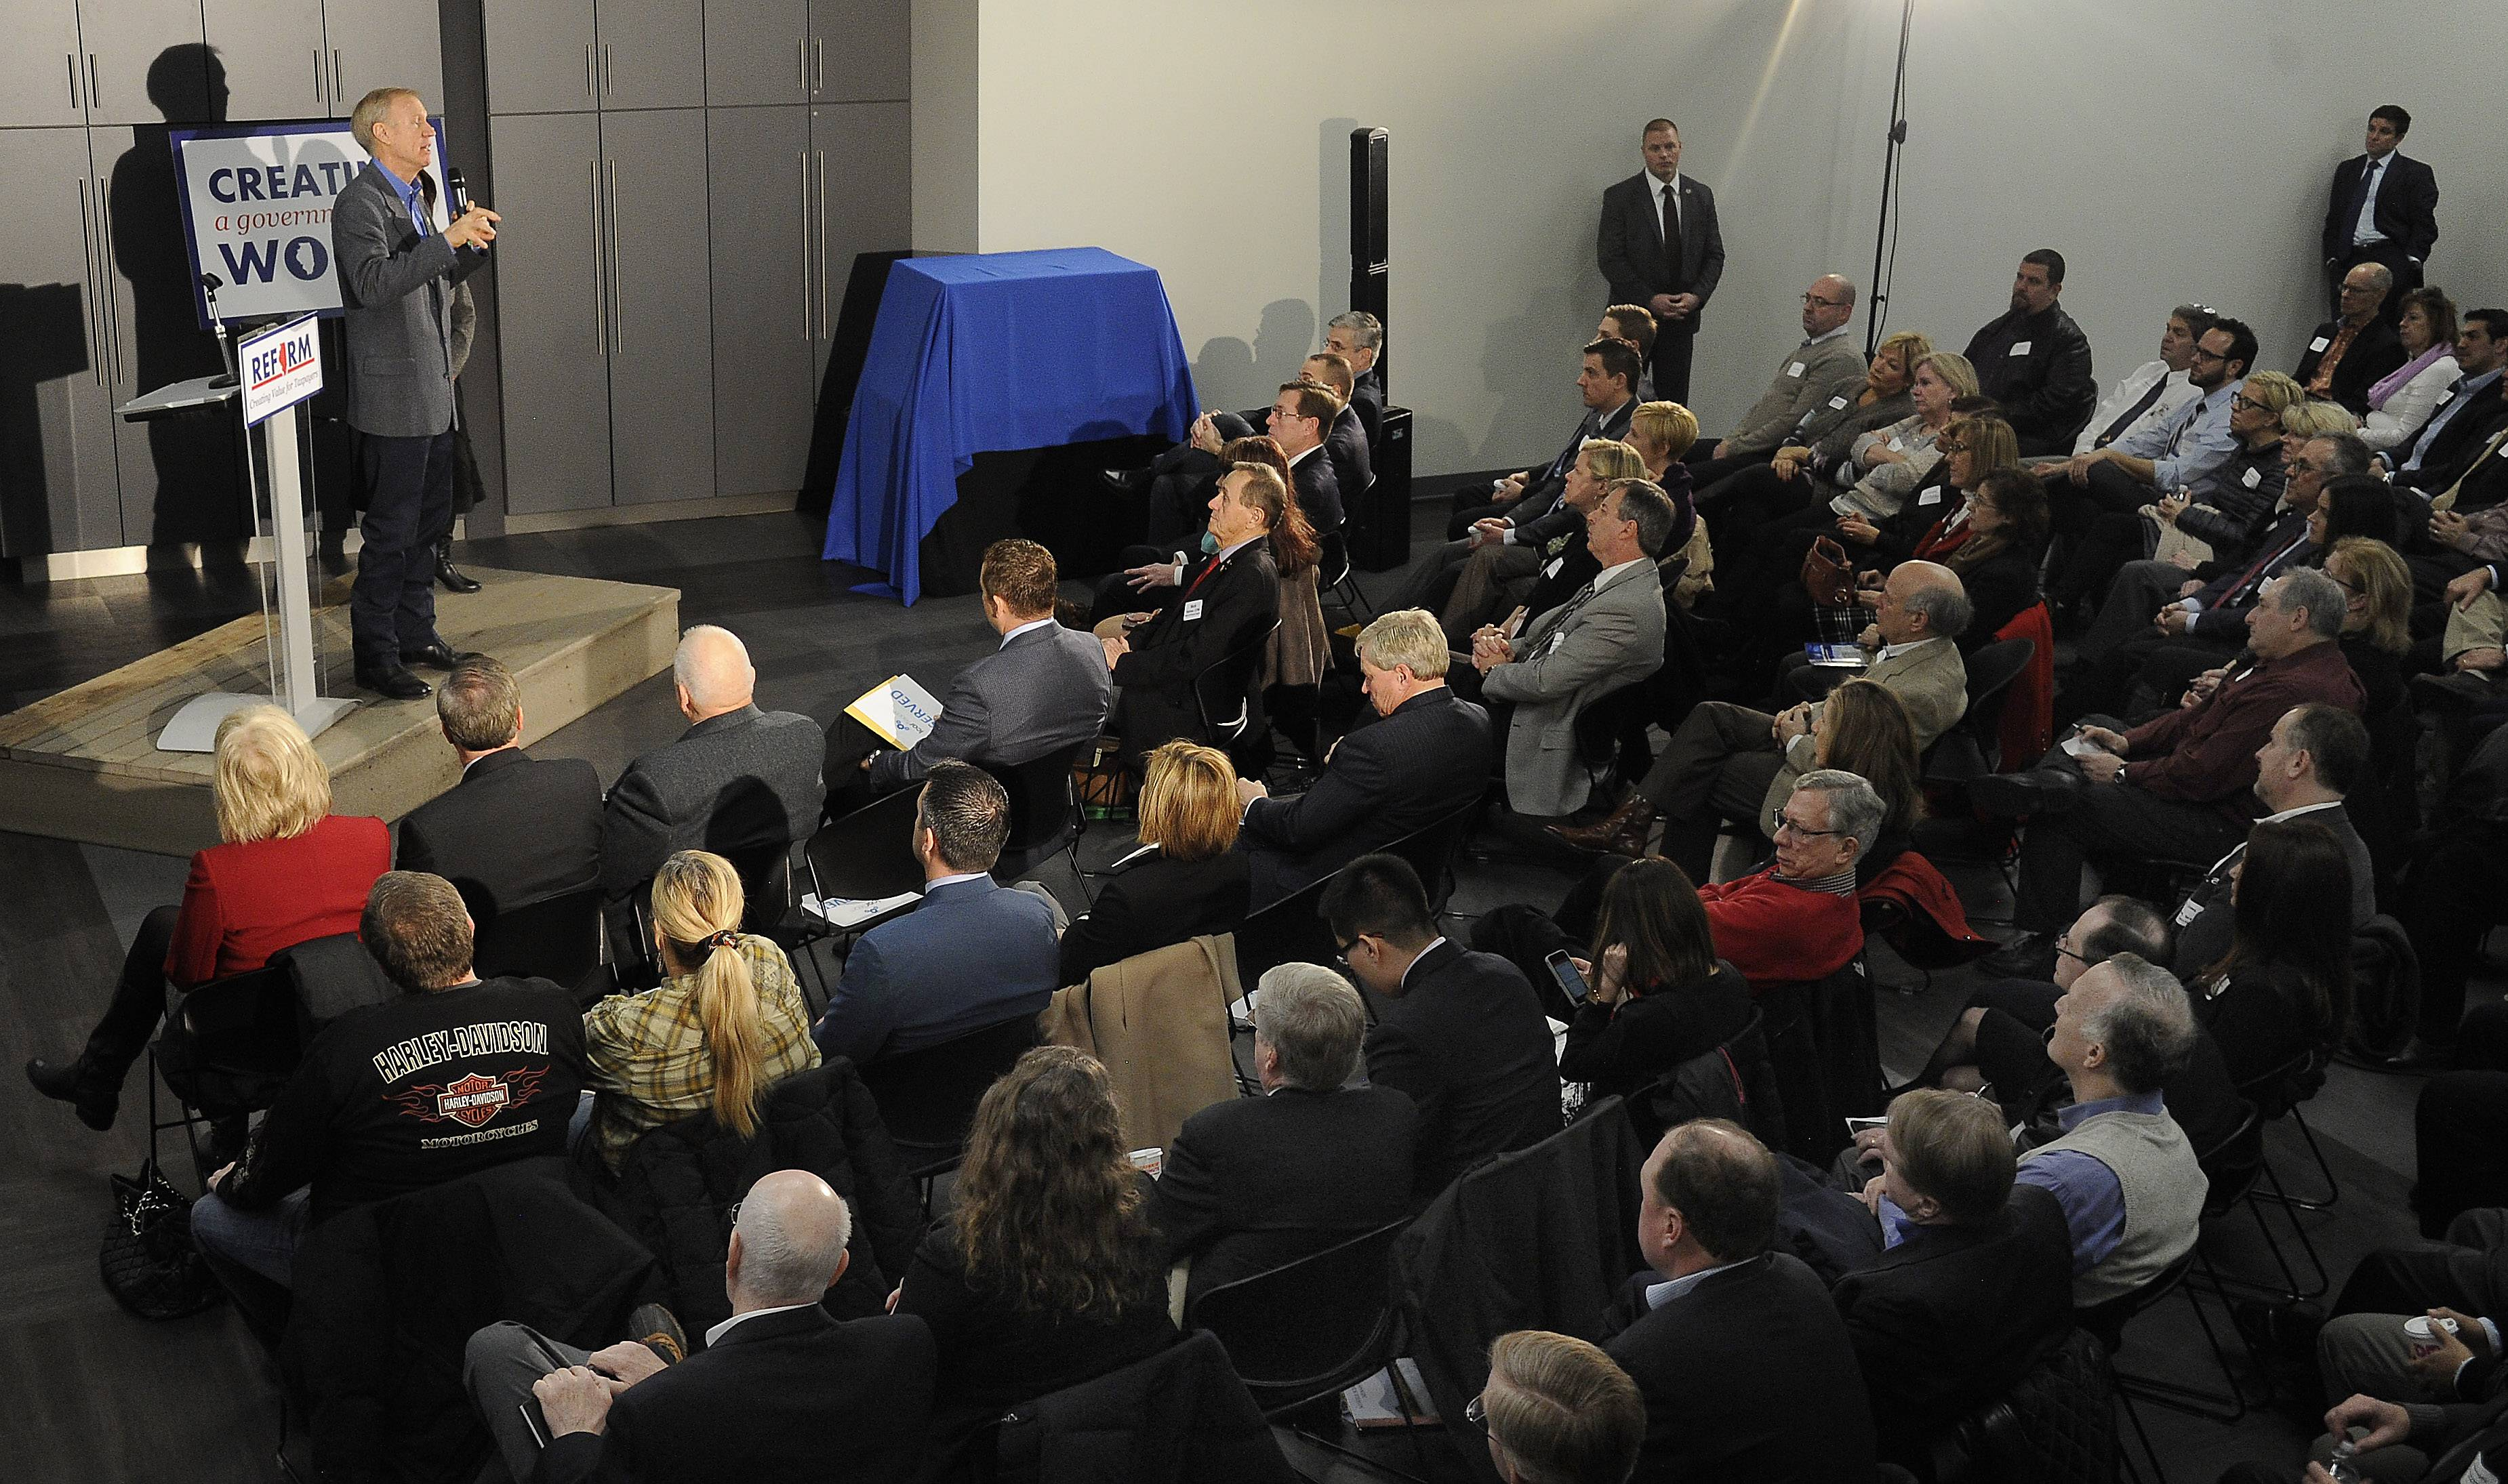 Gov. Bruce Rauner addresses a packed town-hall meeting Monday at the IcarTeam facility in Wheeling. Rauner told suburban business and community leaders that Illinois should look to Texas for ideas on how to improve the business climate.